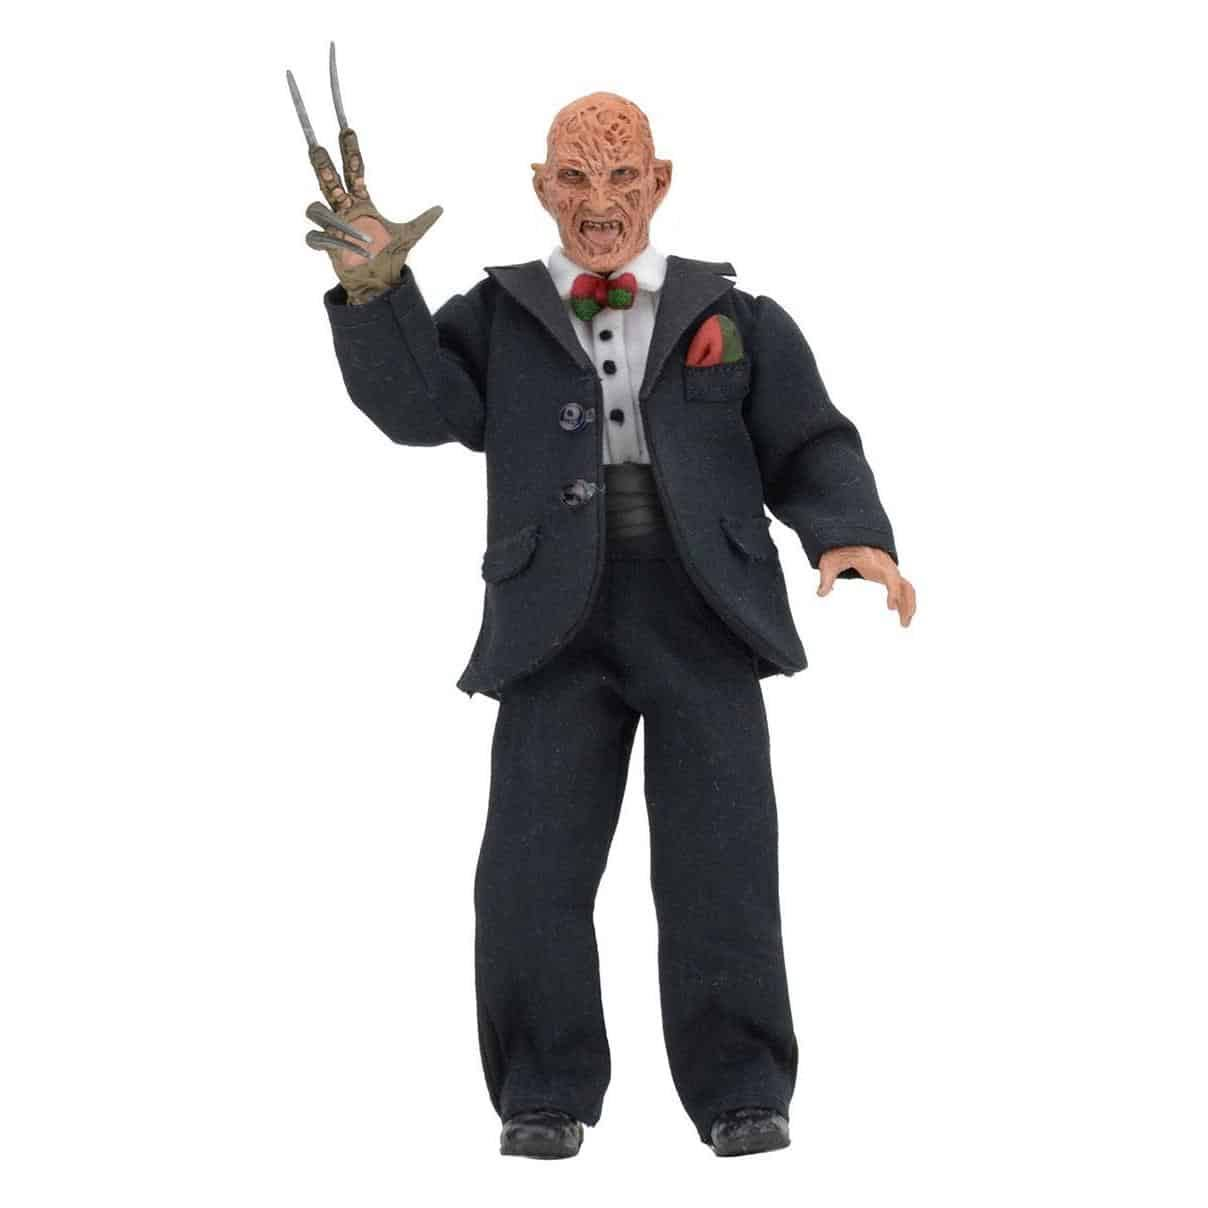 A Nightmare on Elm Street 3 Retro Action Figure - Tuxedo Freddy, 8""